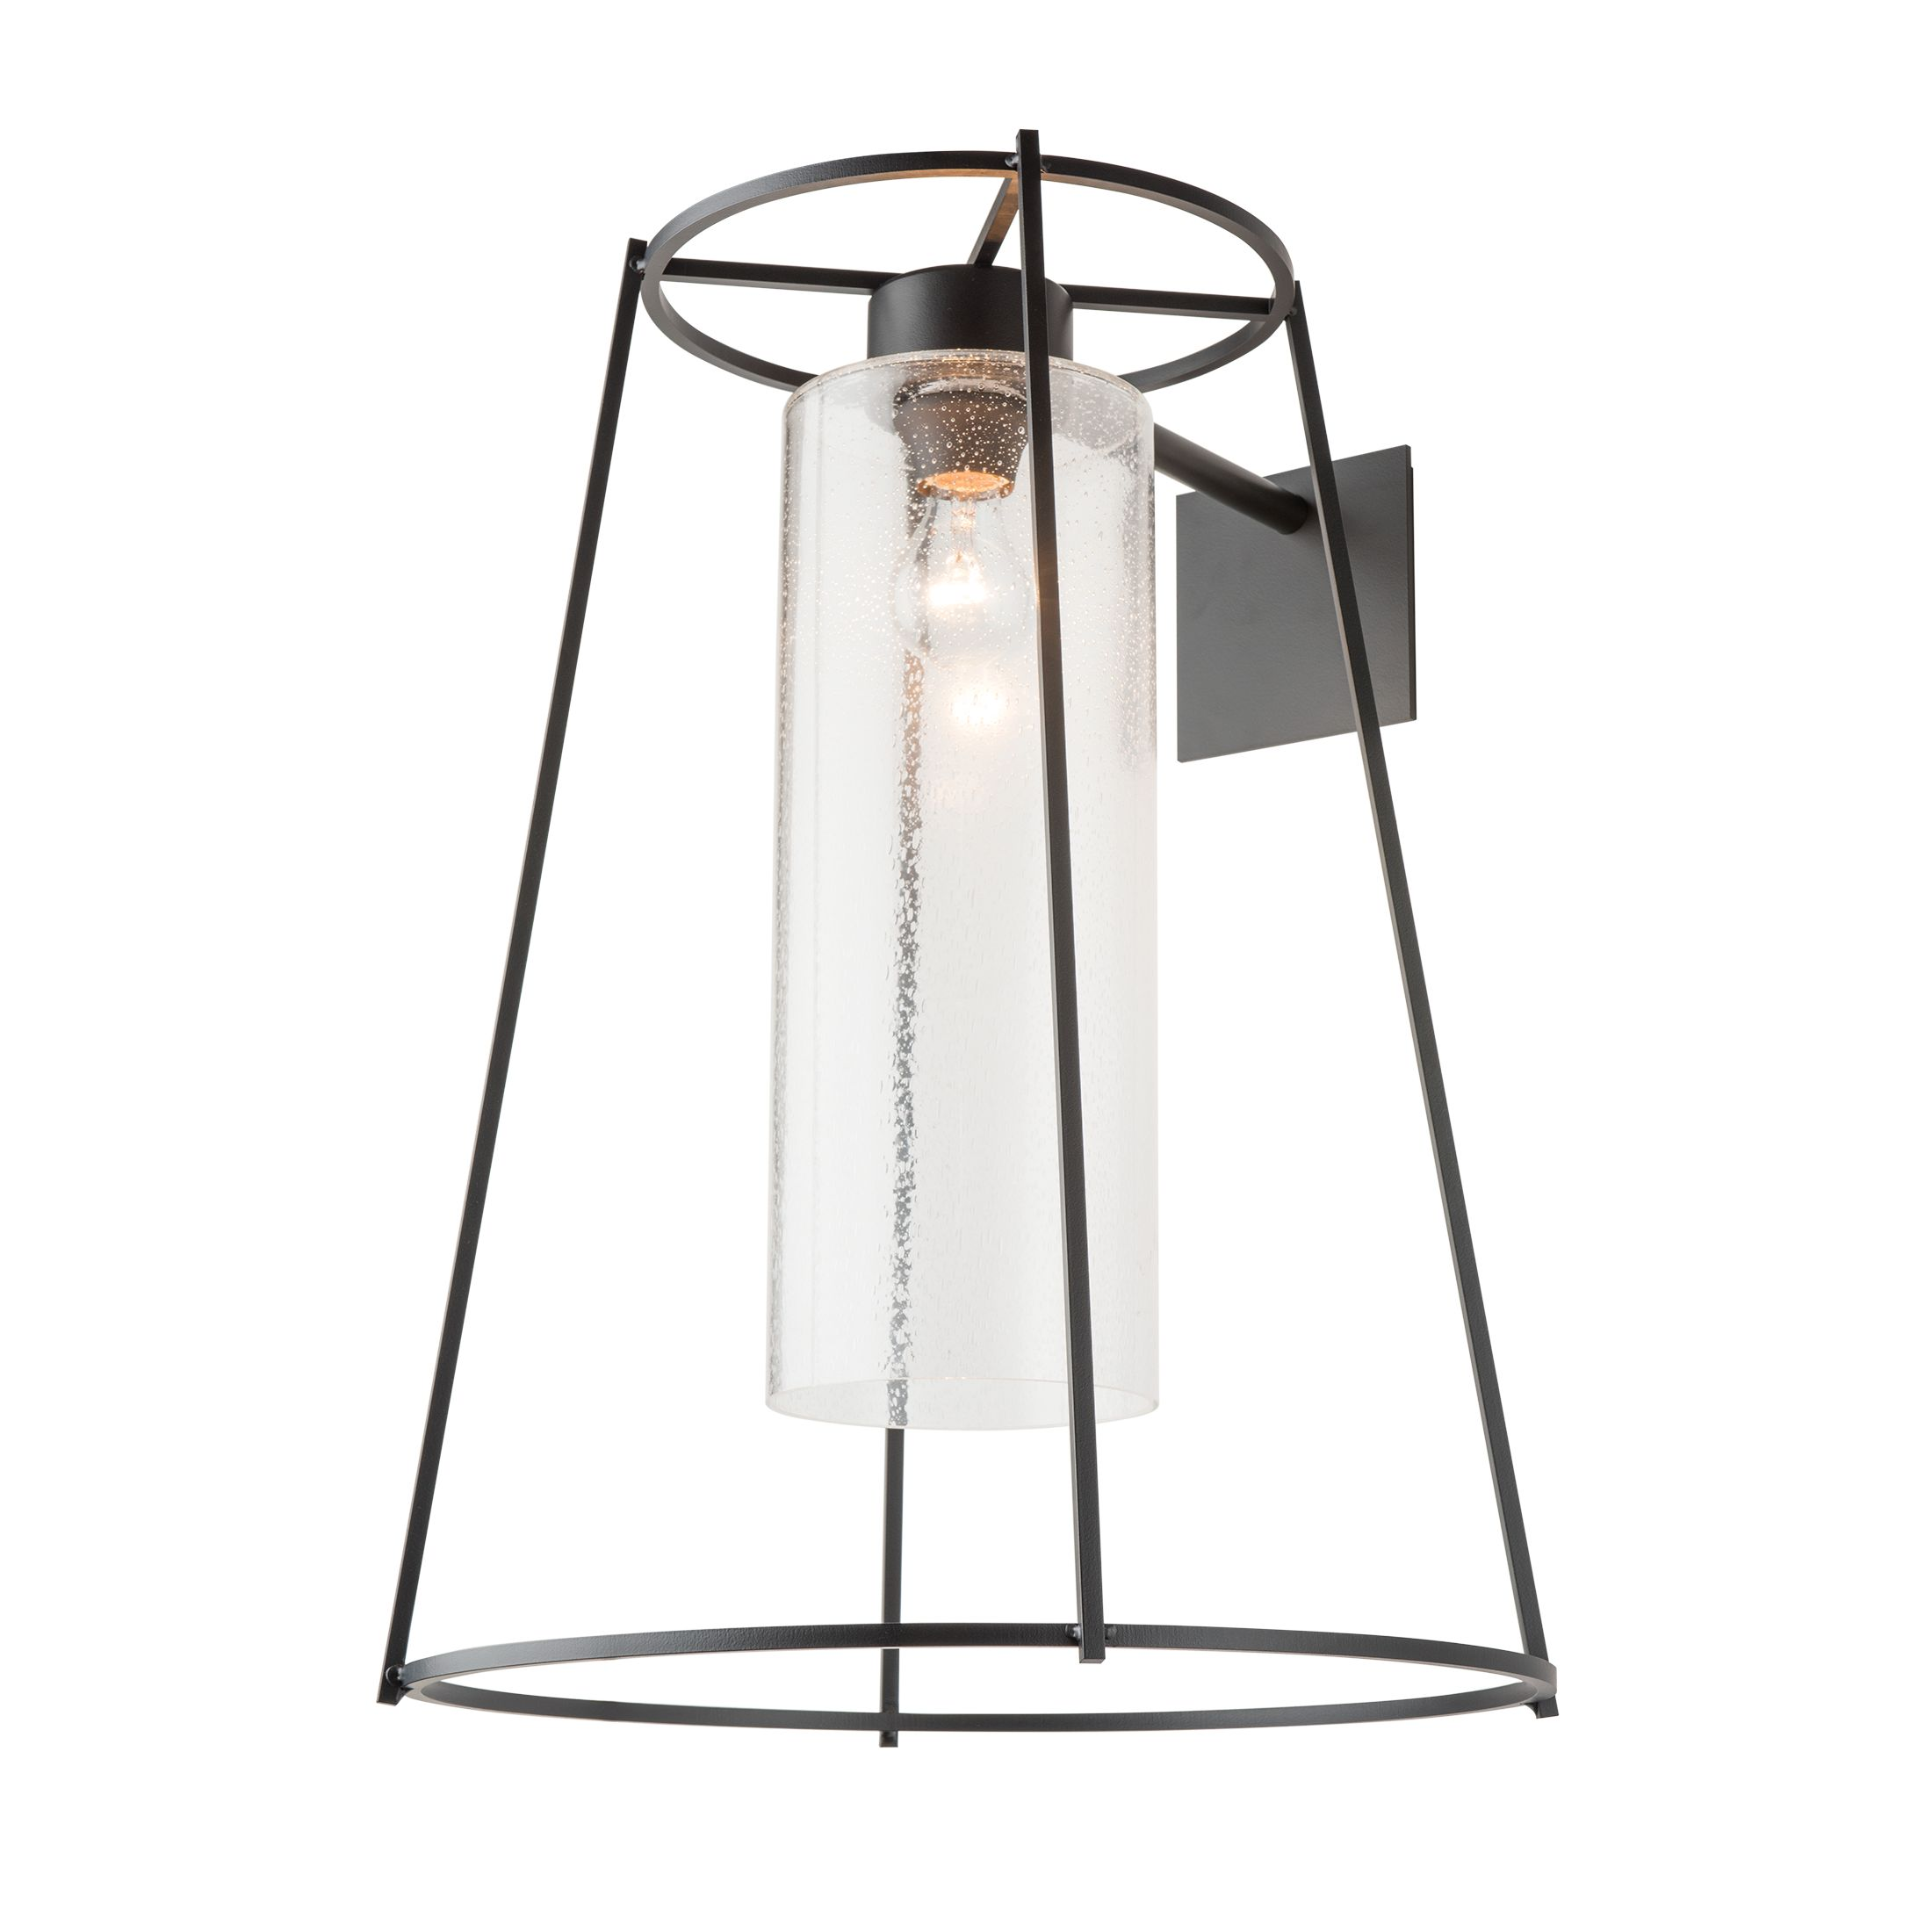 Thumbnail for Loft Large Outdoor Sconce